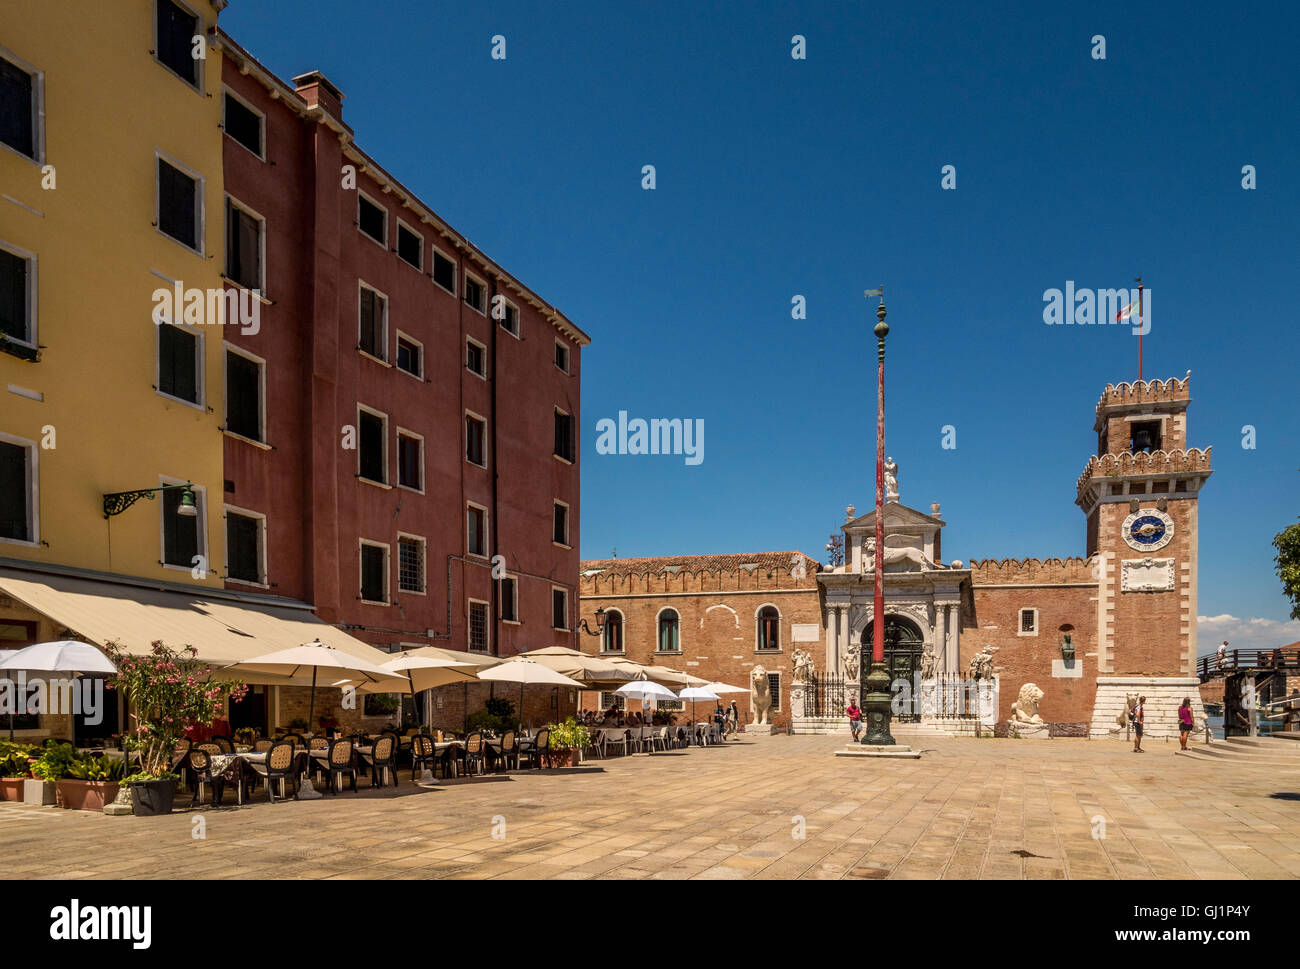 Canal side Cafe with Porta Magna, Arsenale in the background. Venice, Italy. - Stock Image